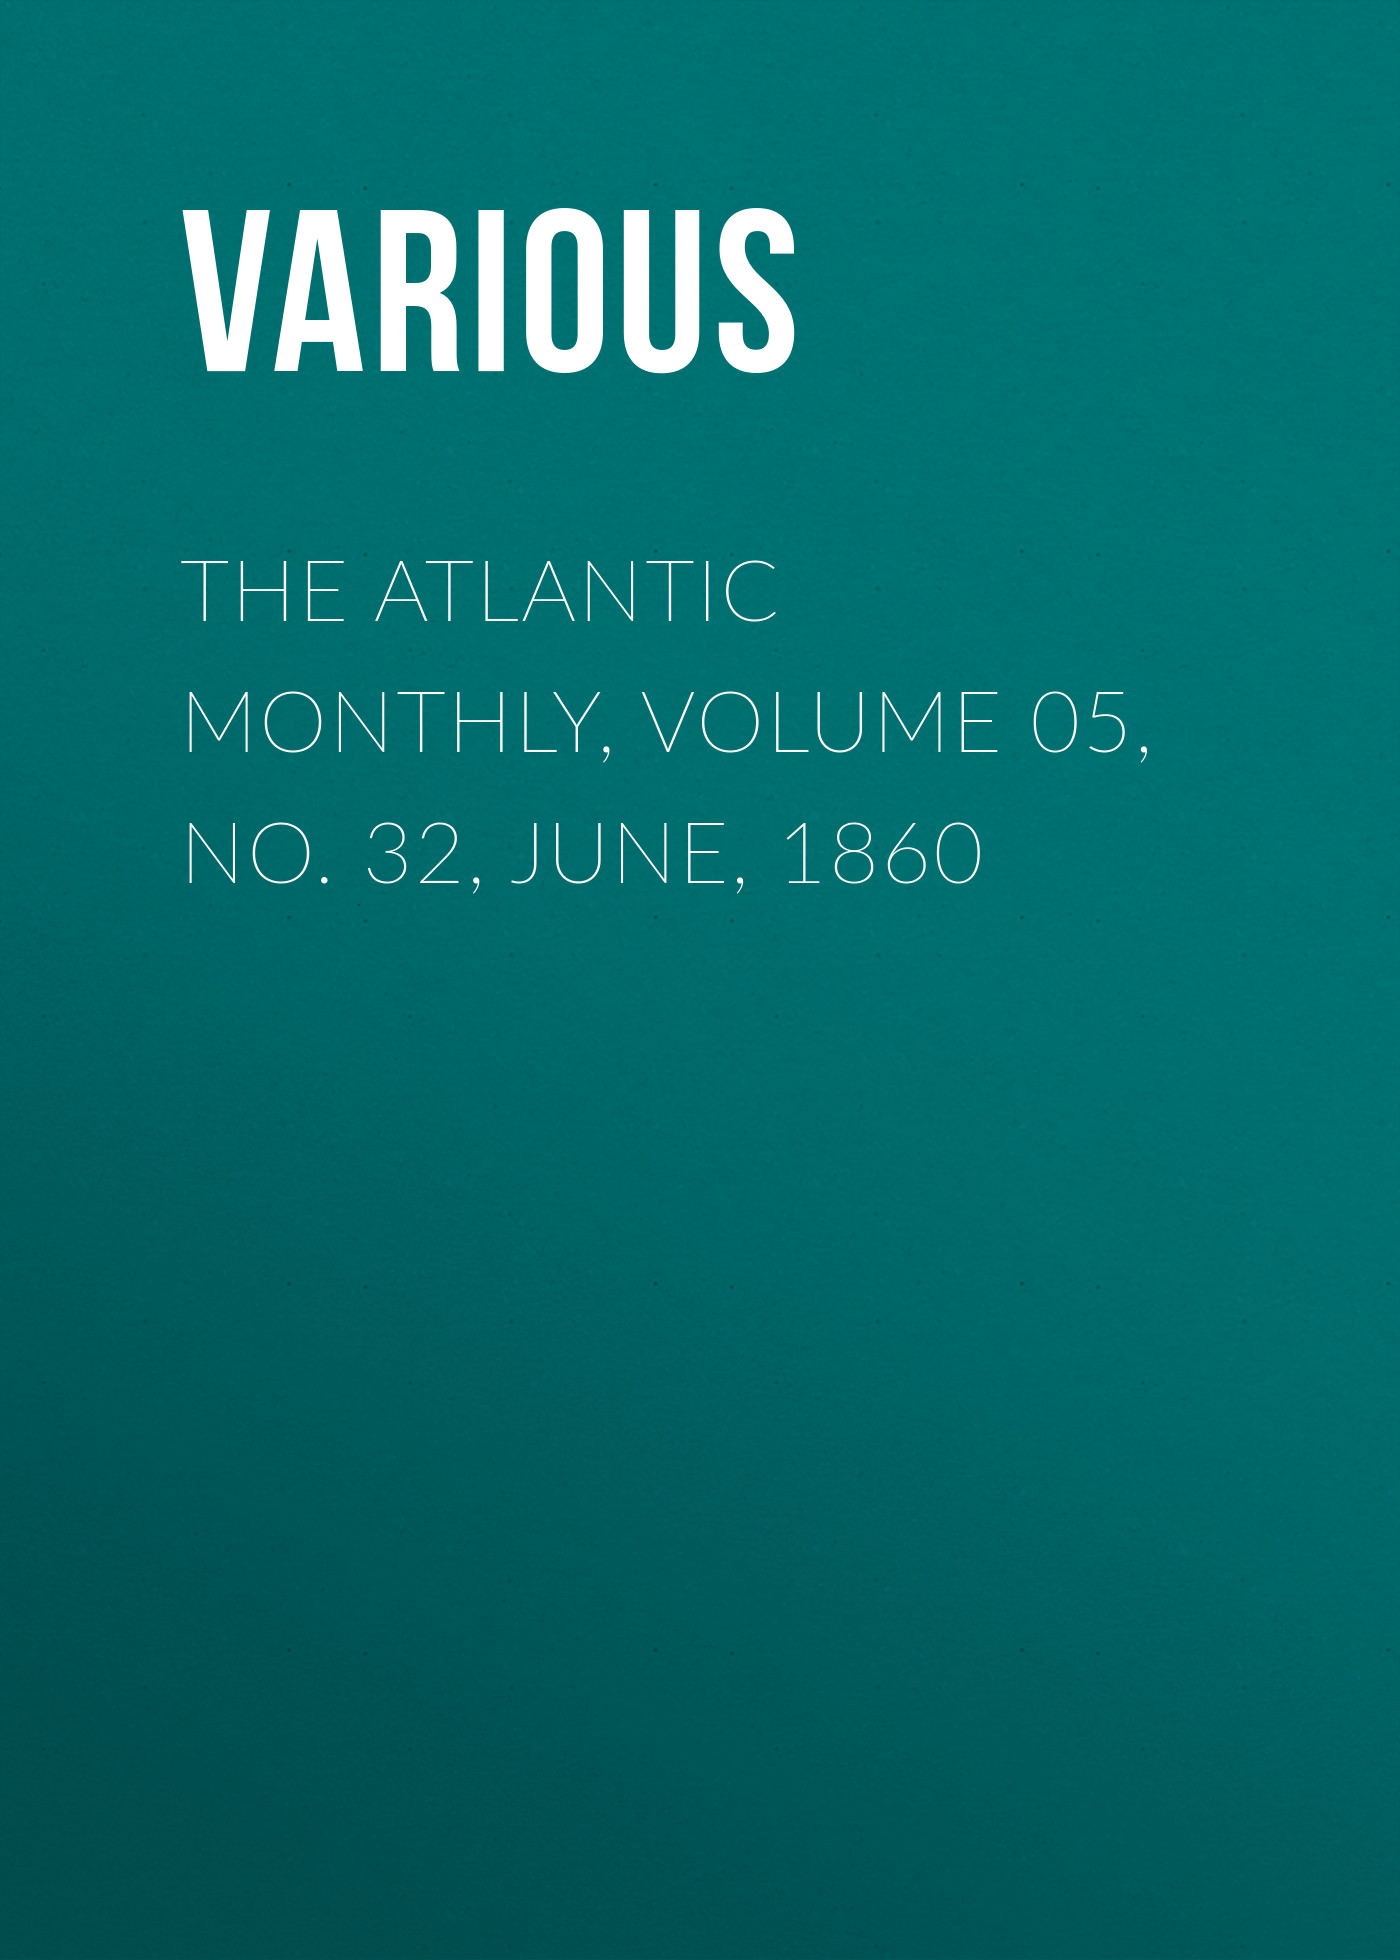 Various The Atlantic Monthly, Volume 05, No. 32, June, 1860